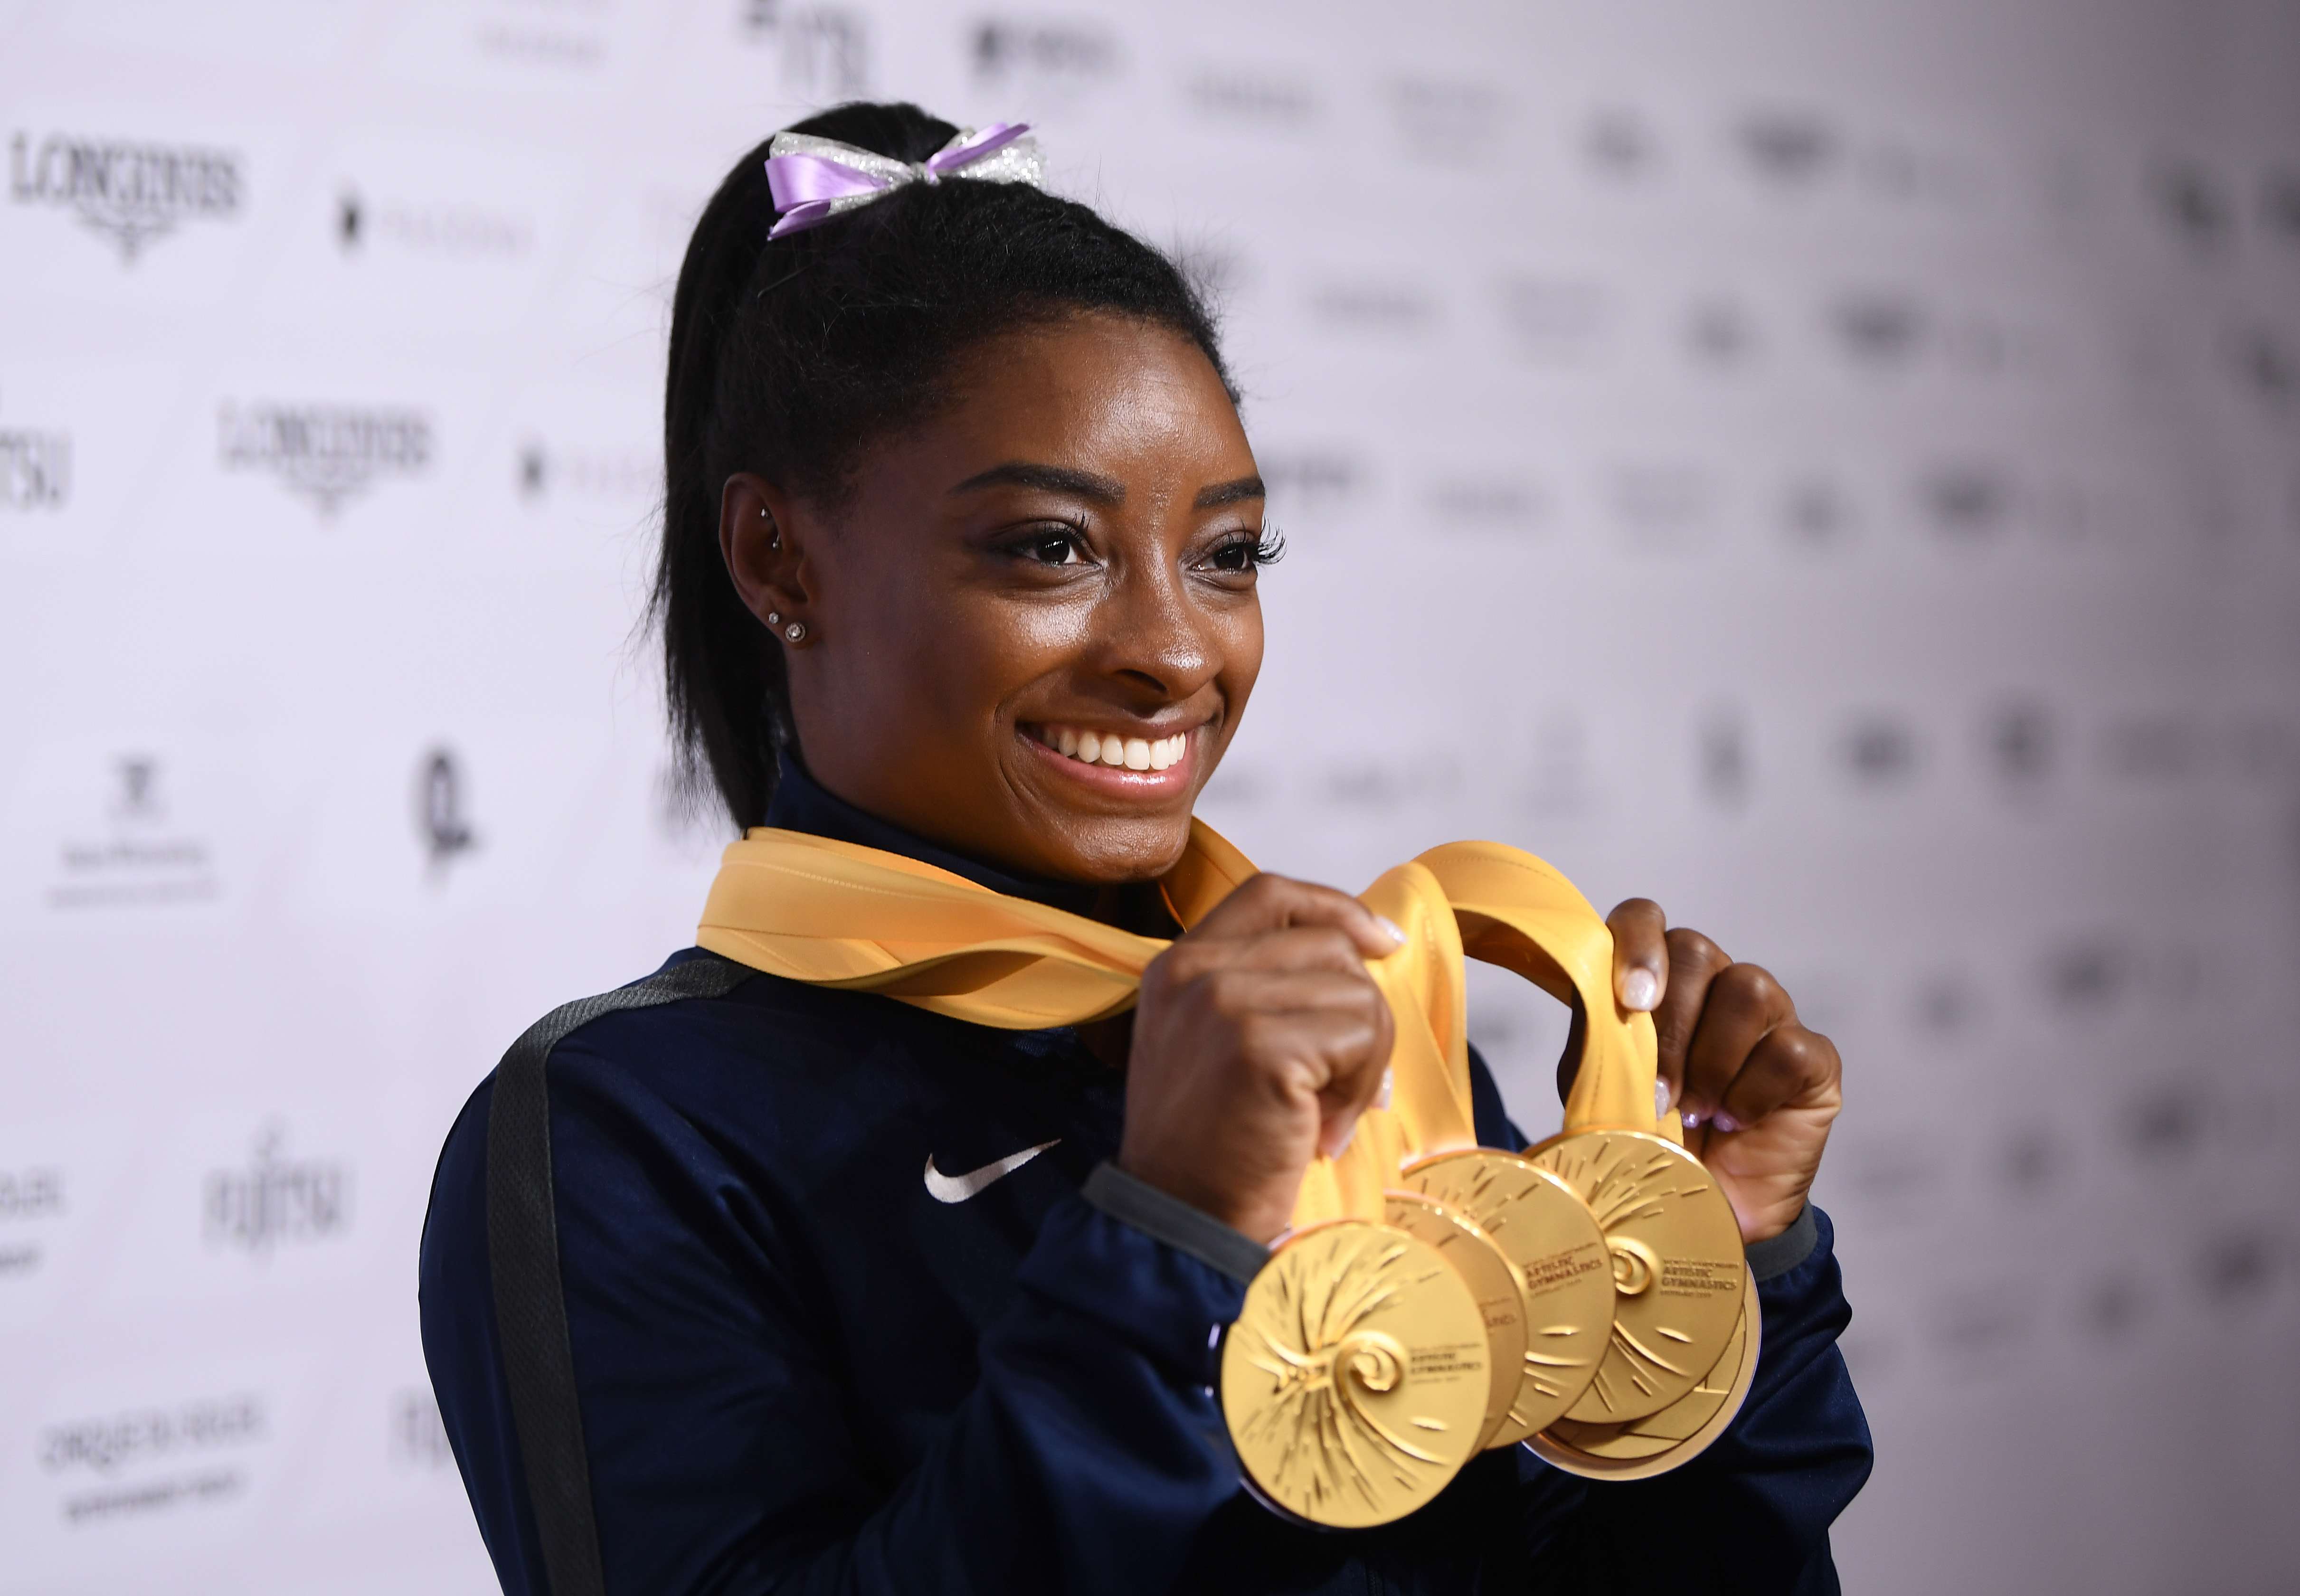 Gymnast Simone Biles calls Olympic postponement the 'right decision'